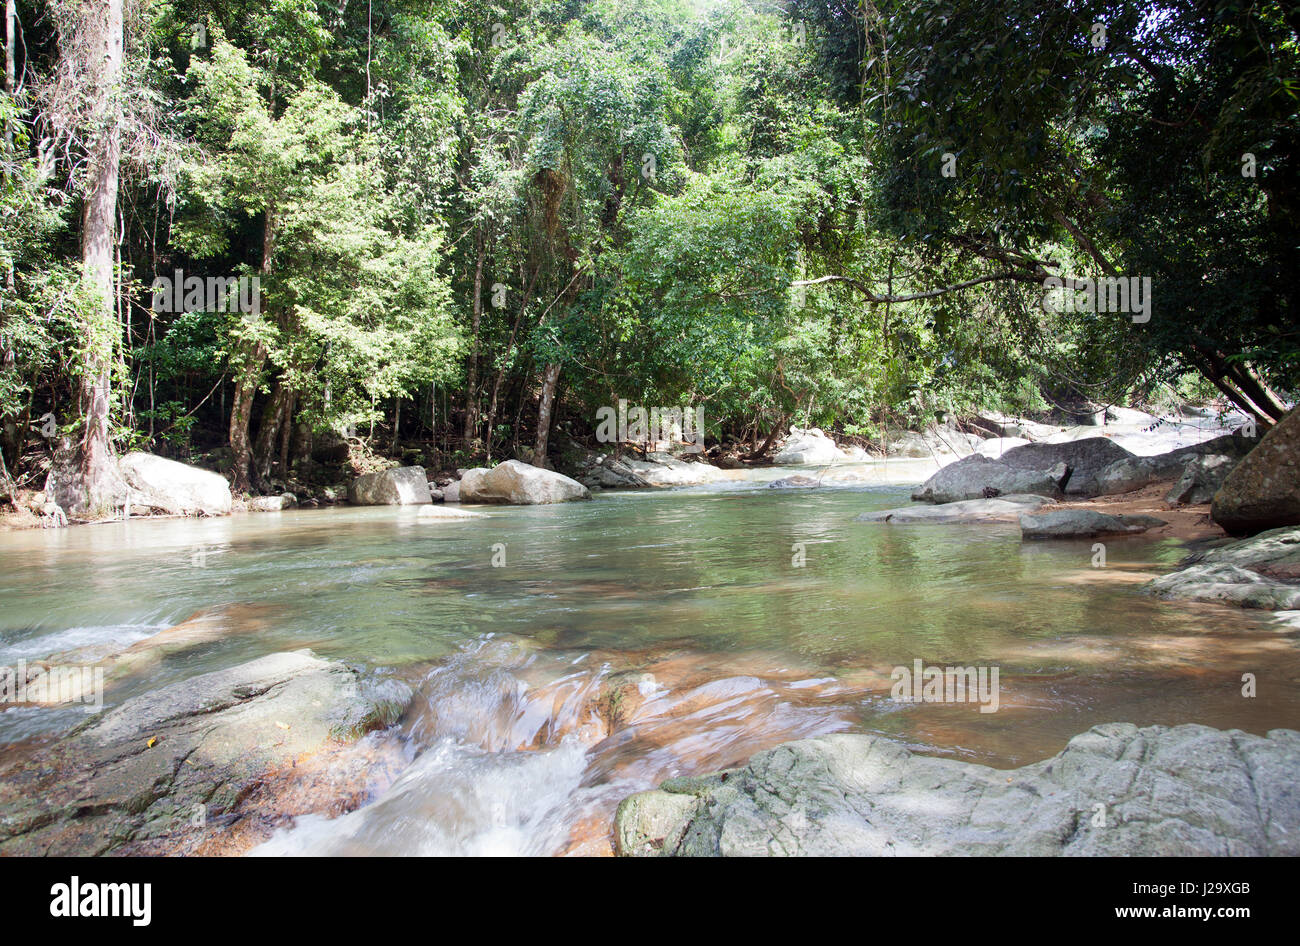 Hin Lad waterfalls in Ko Samui, Thailand - Stock Image